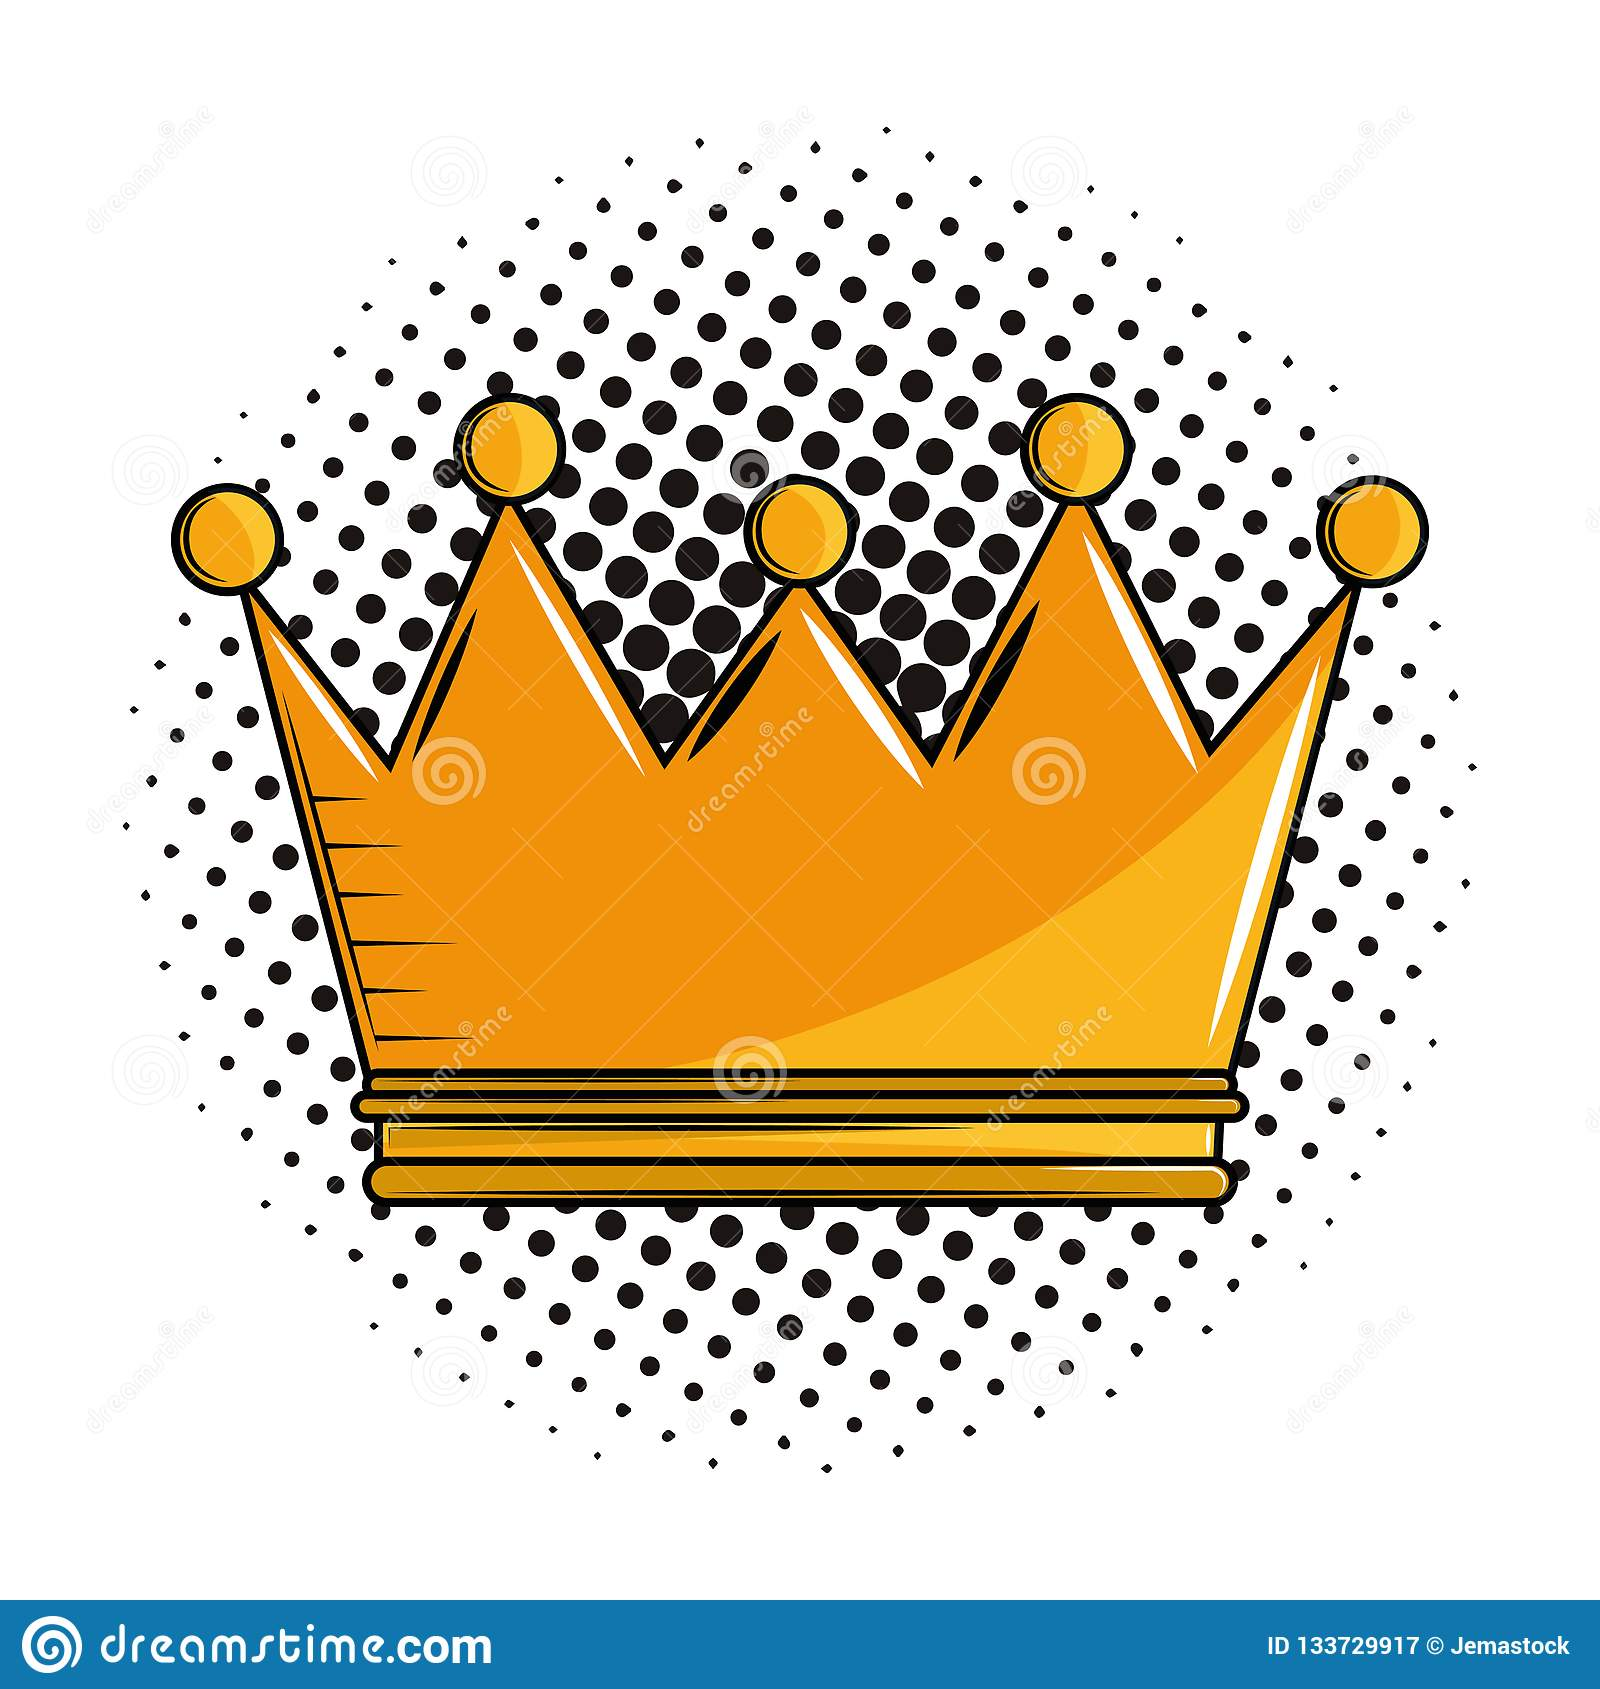 King Crown Cartoon Pop Art Stock Vector Illustration Of Graphic